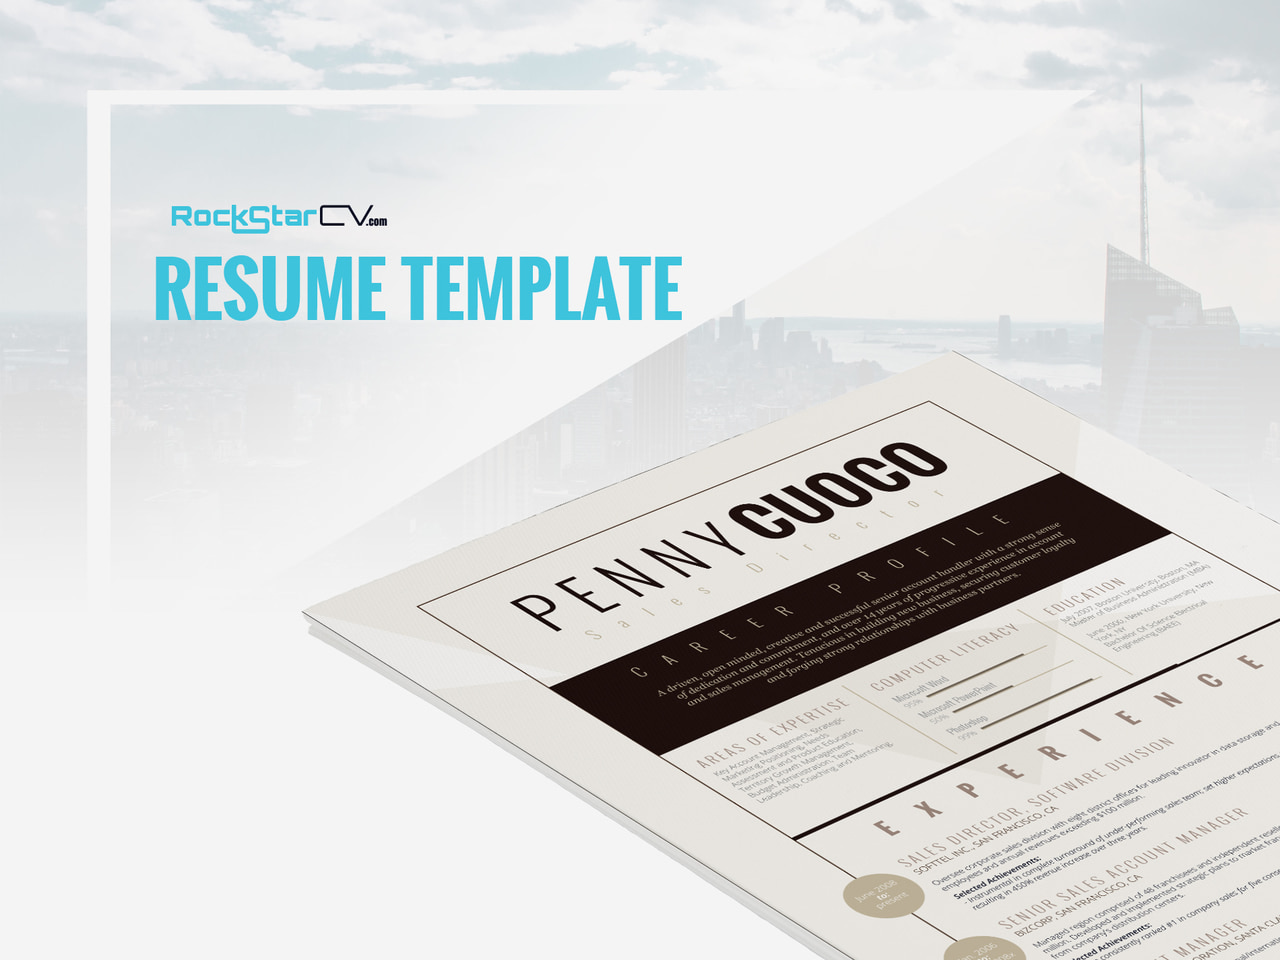 article and resume image